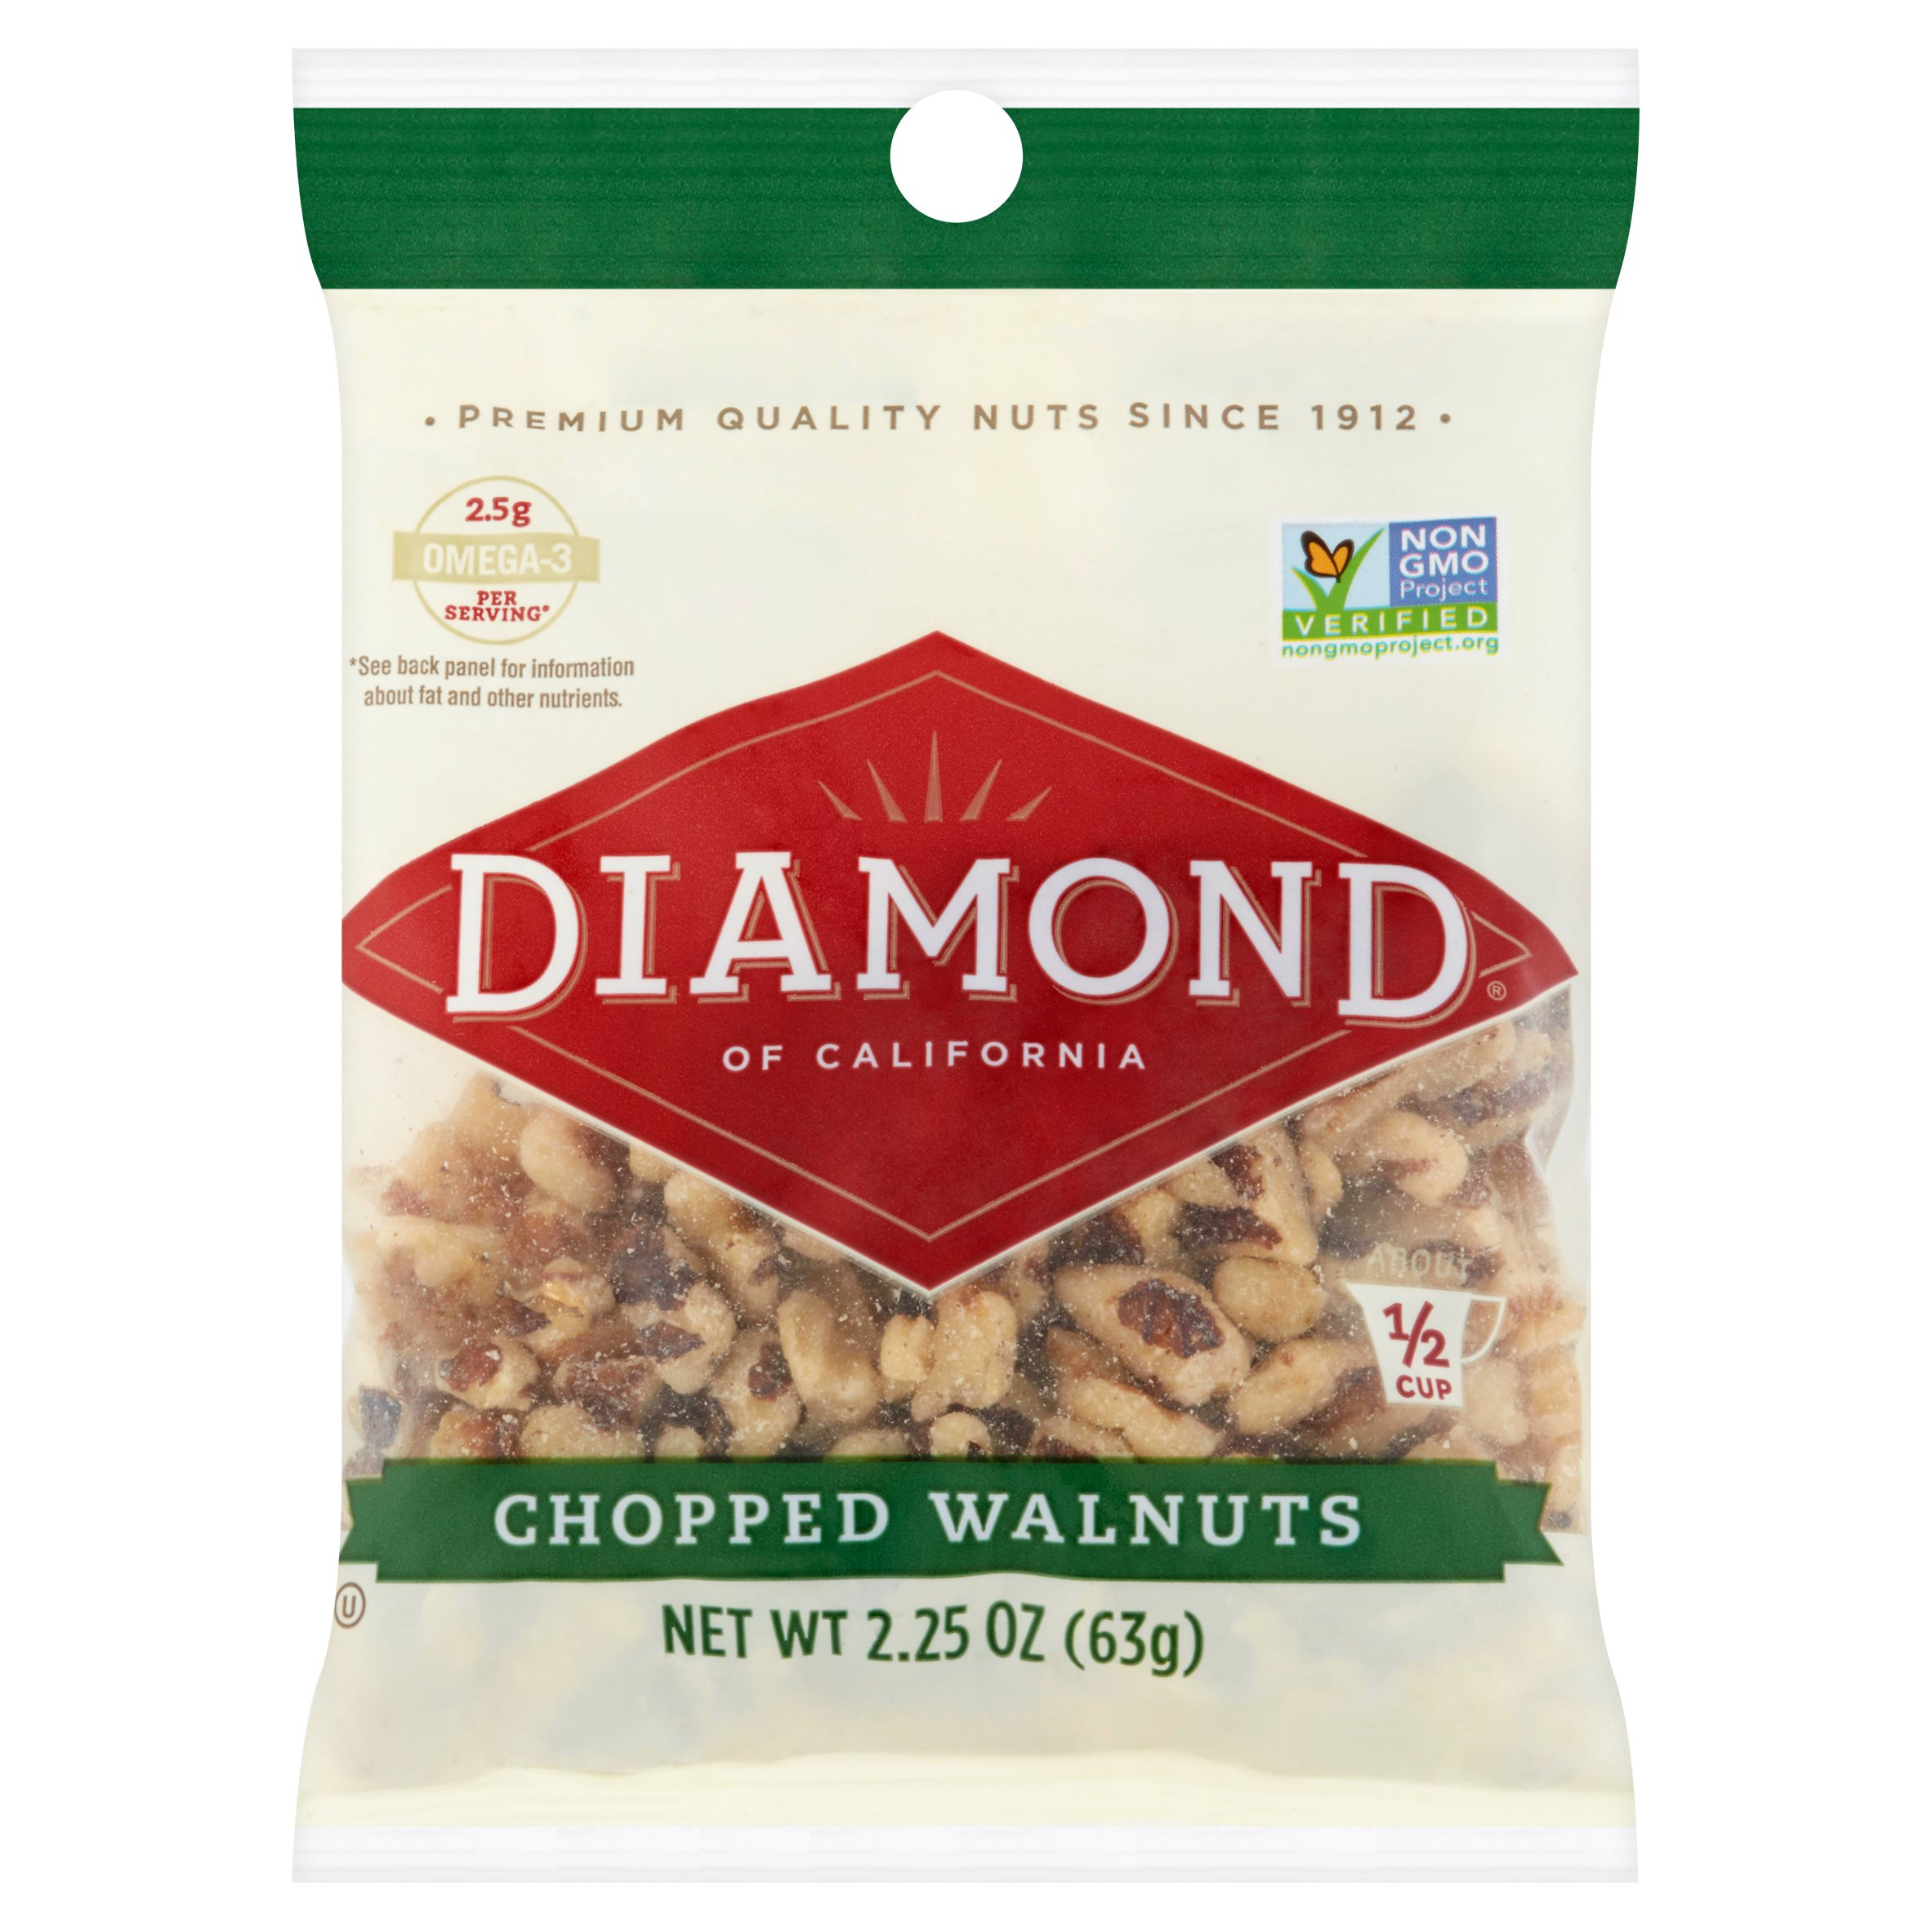 Diamond of California Chopped Walnuts 2.25oz